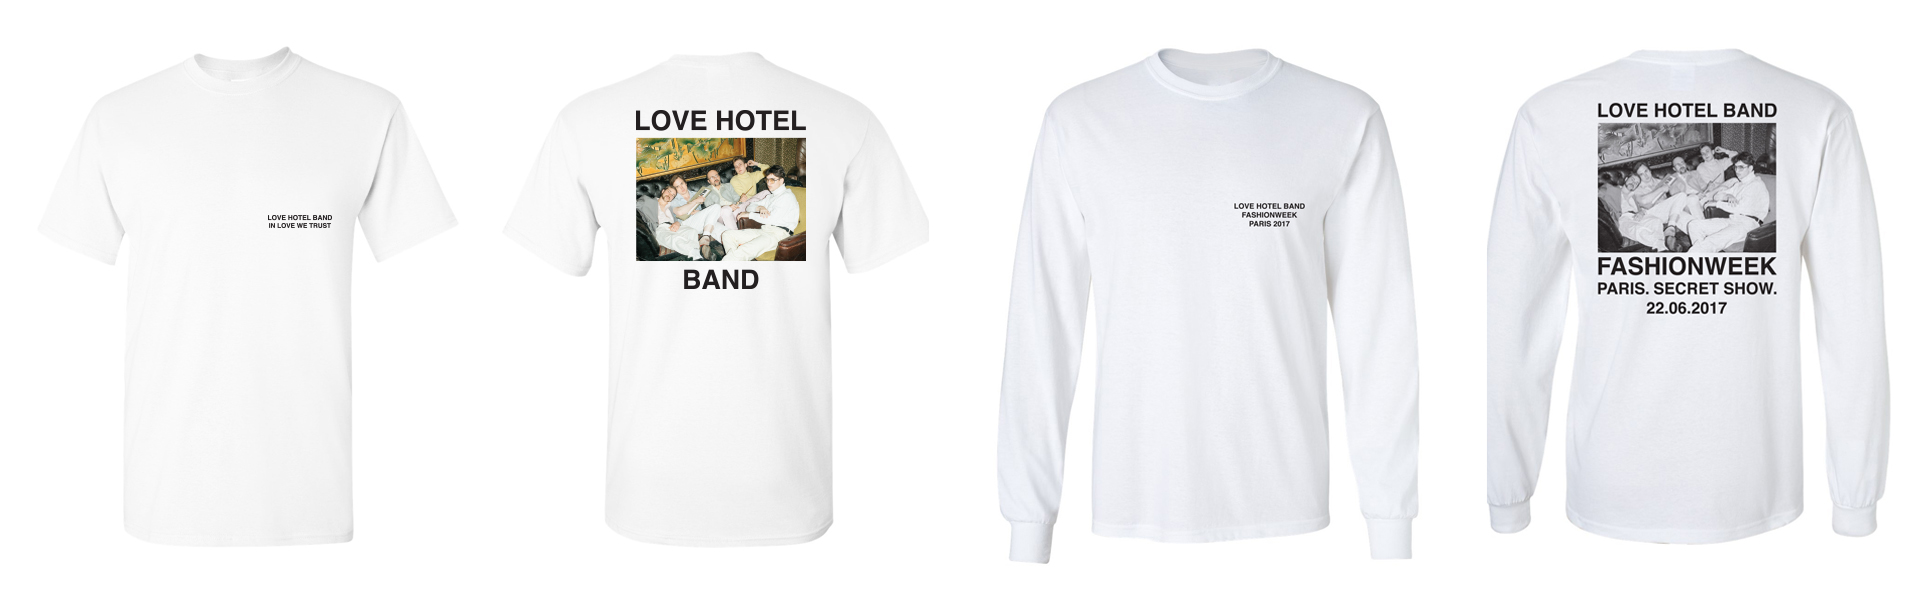 Love Hotel Band Merchandise